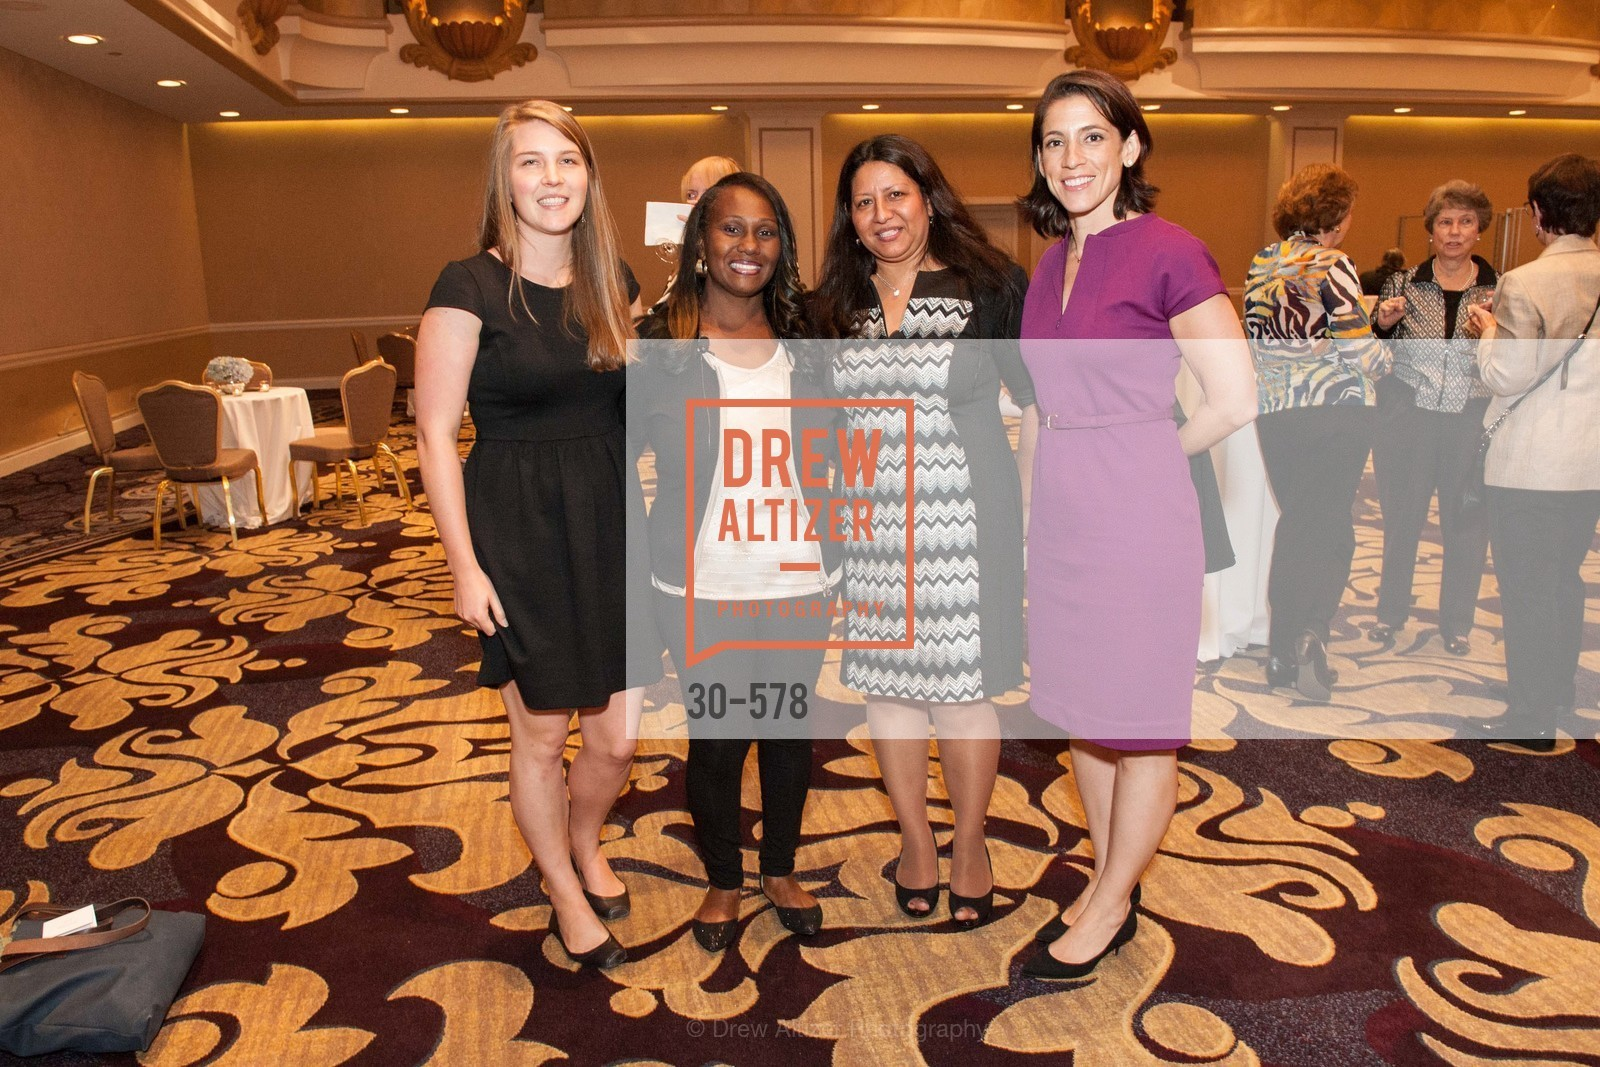 Stephanie Bemong, Carla Roberts, Sonya Batres, Jen Pitts, HOMELESS PRENATAL Annual Luncheon 2014, US, October 1st, 2014,Drew Altizer, Drew Altizer Photography, full-service agency, private events, San Francisco photographer, photographer california